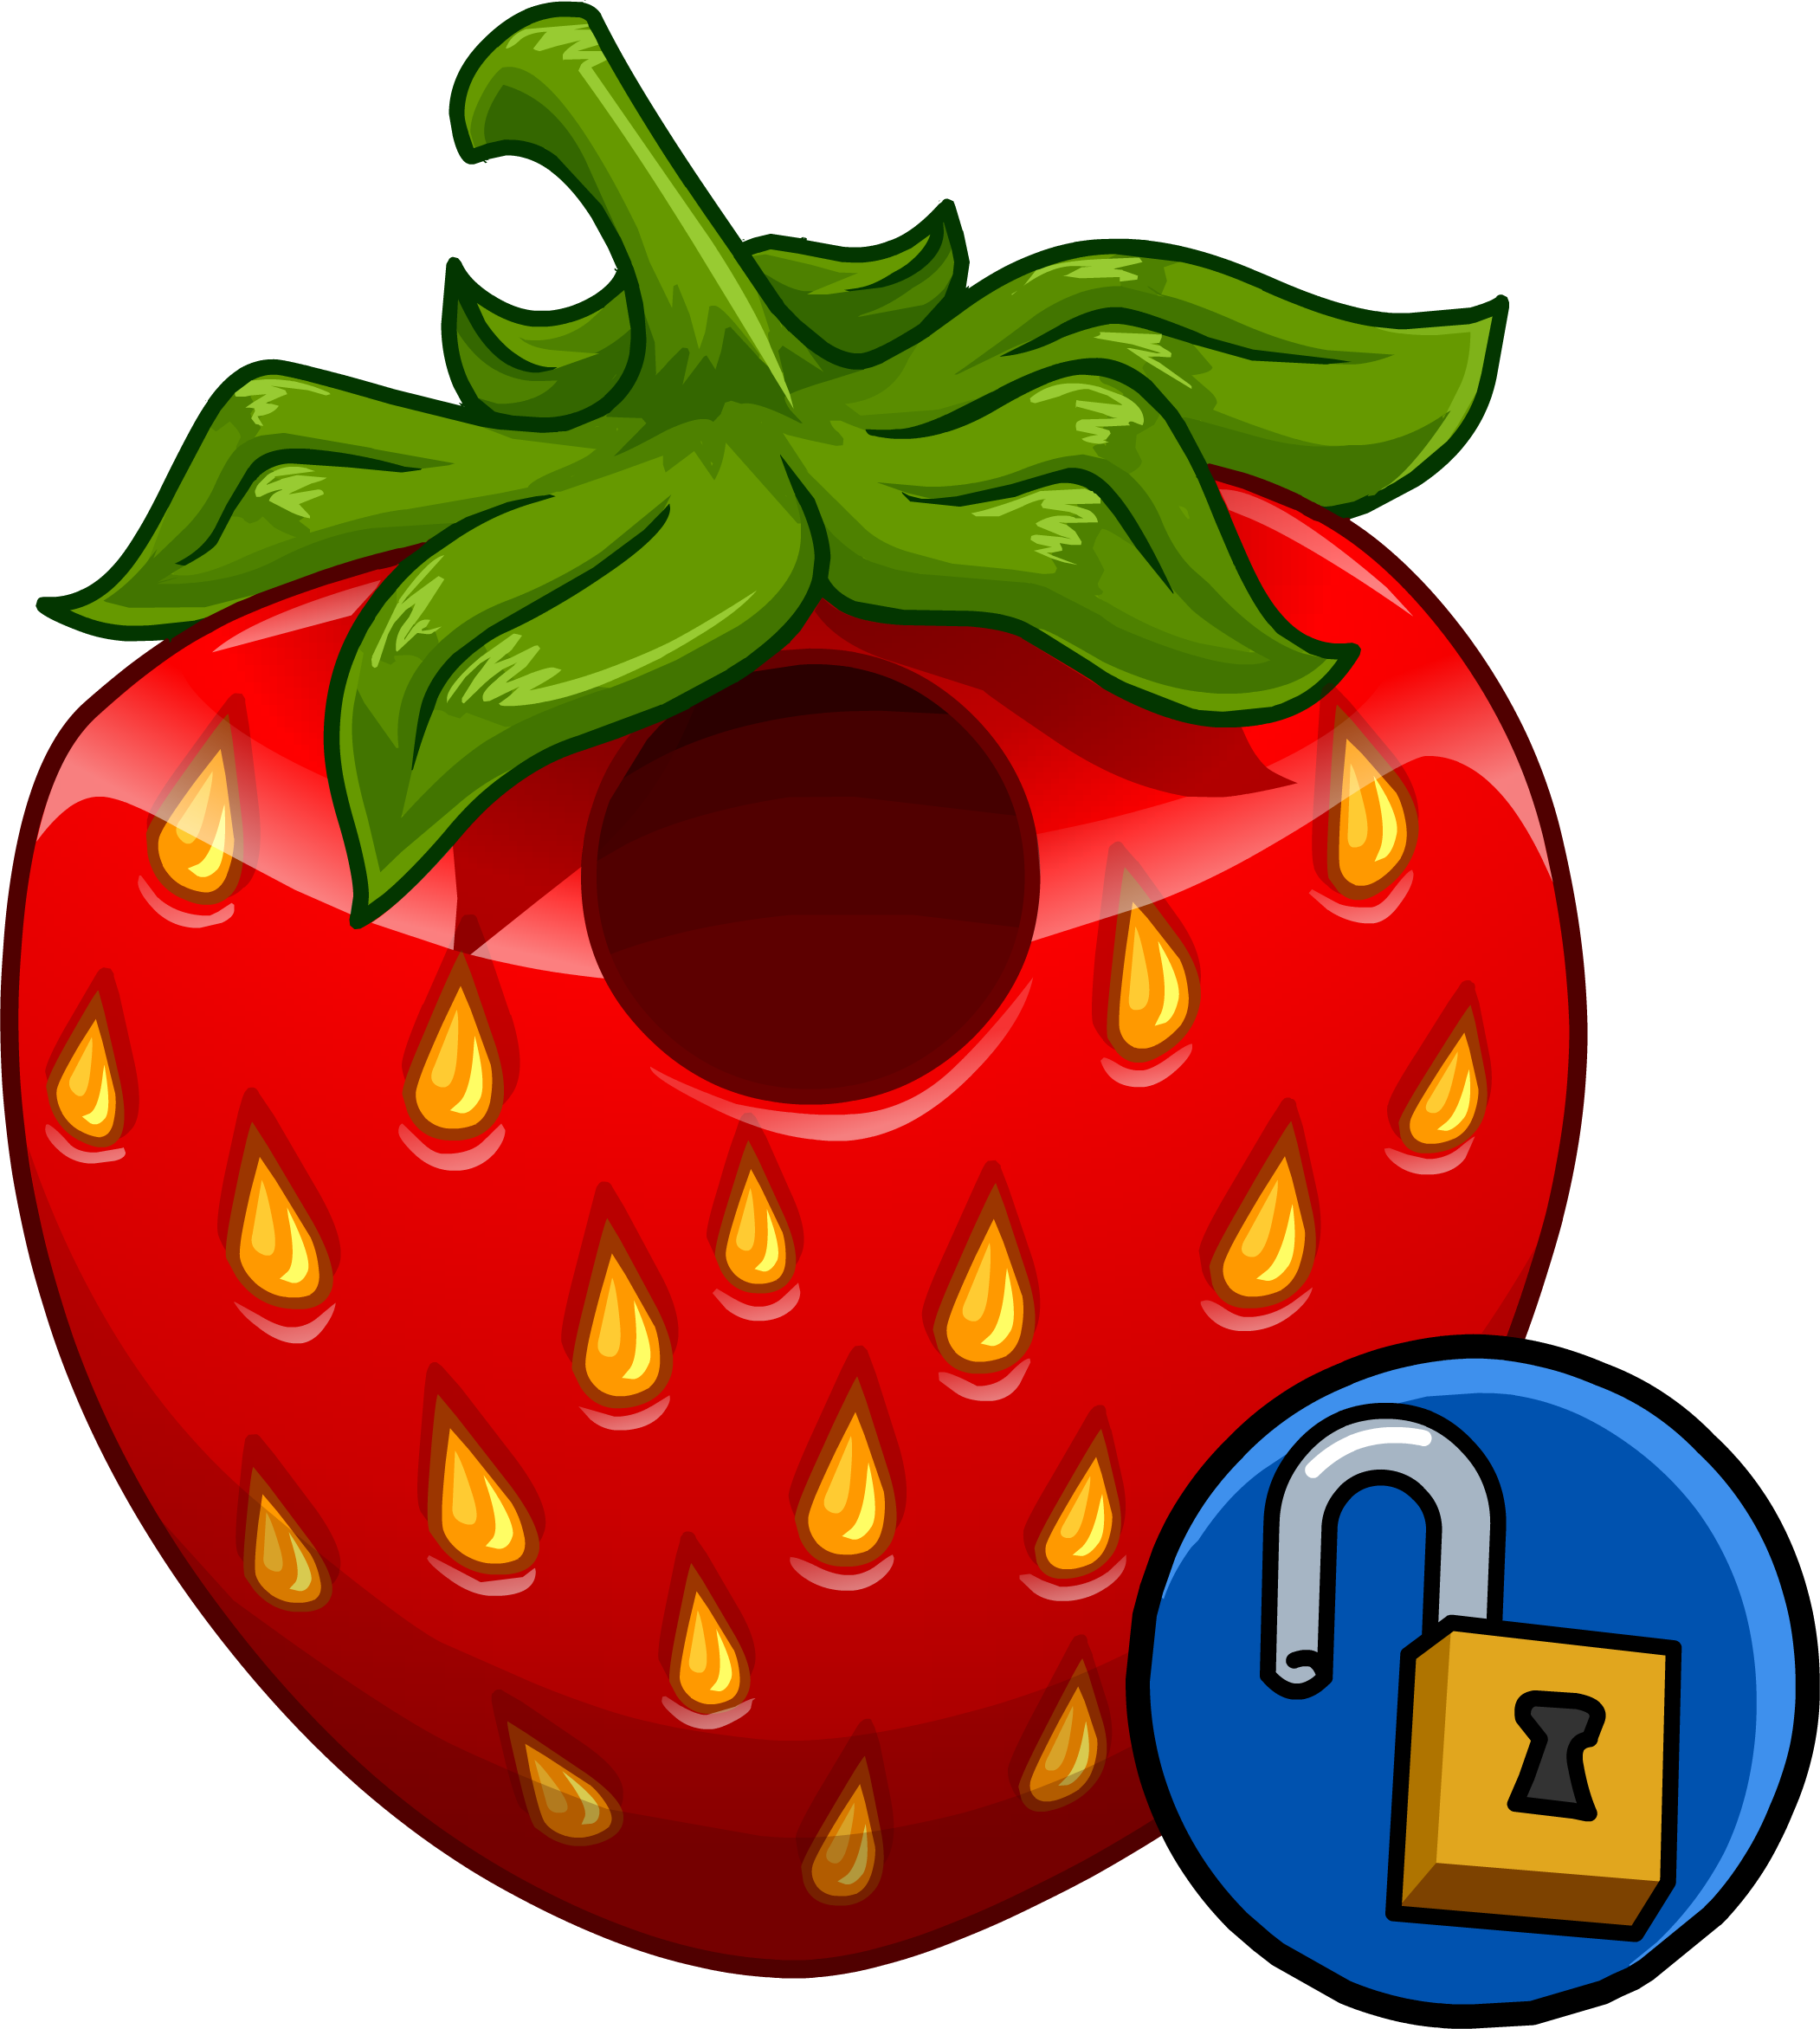 Strawberry costume club penguin. Wednesday clipart wacky outfit